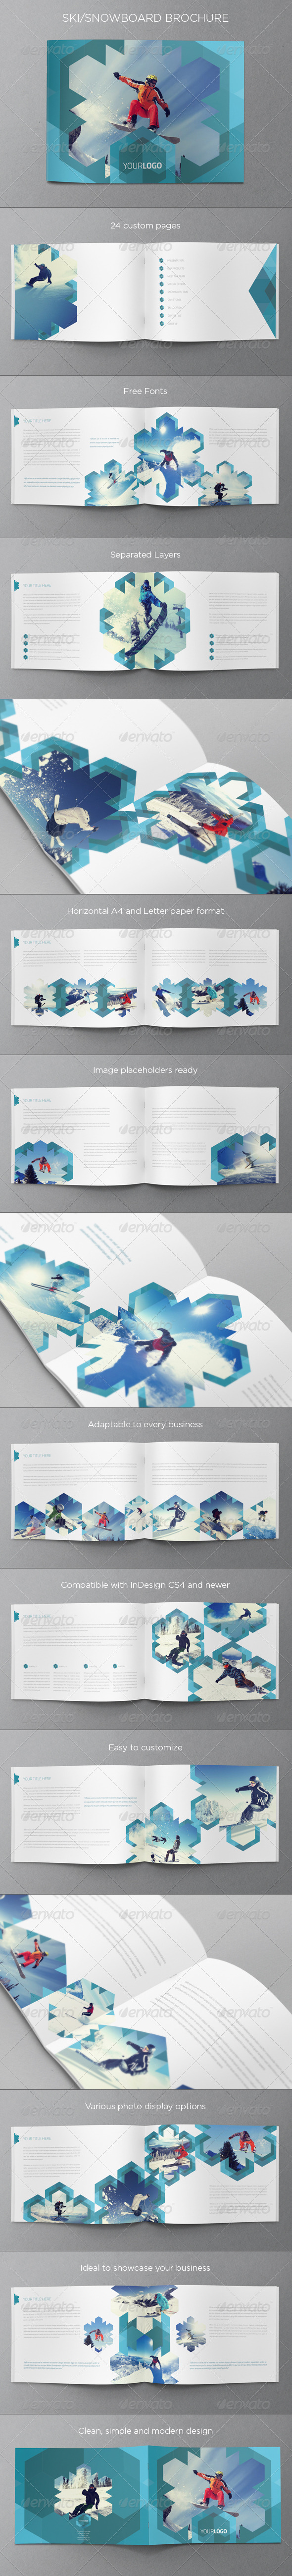 GraphicRiver Ski & Snowboard Winter Brochure 6278651